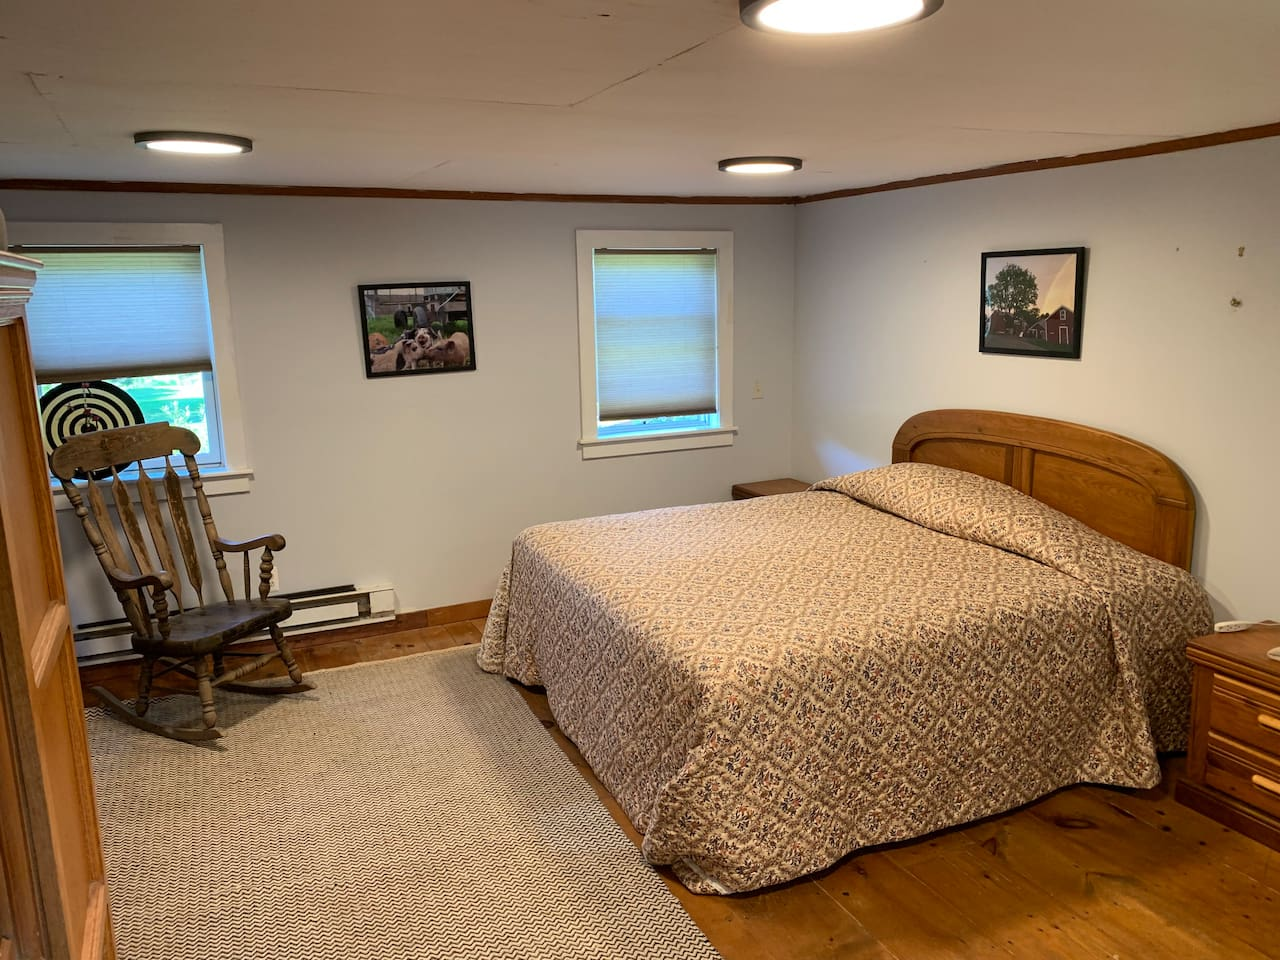 King-sized bed with a futon available.